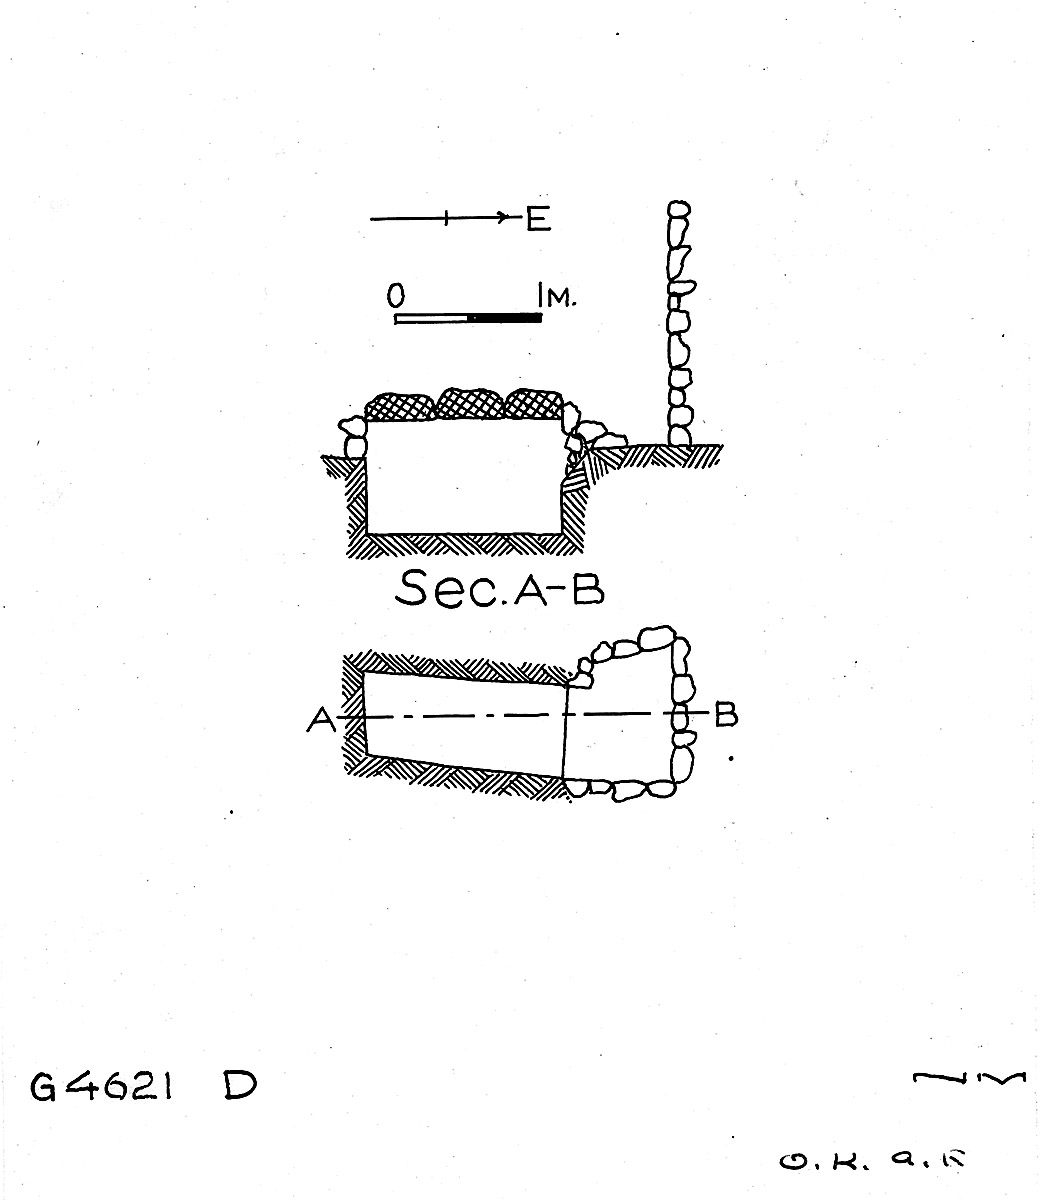 Maps and plans: G 4621, Shaft D